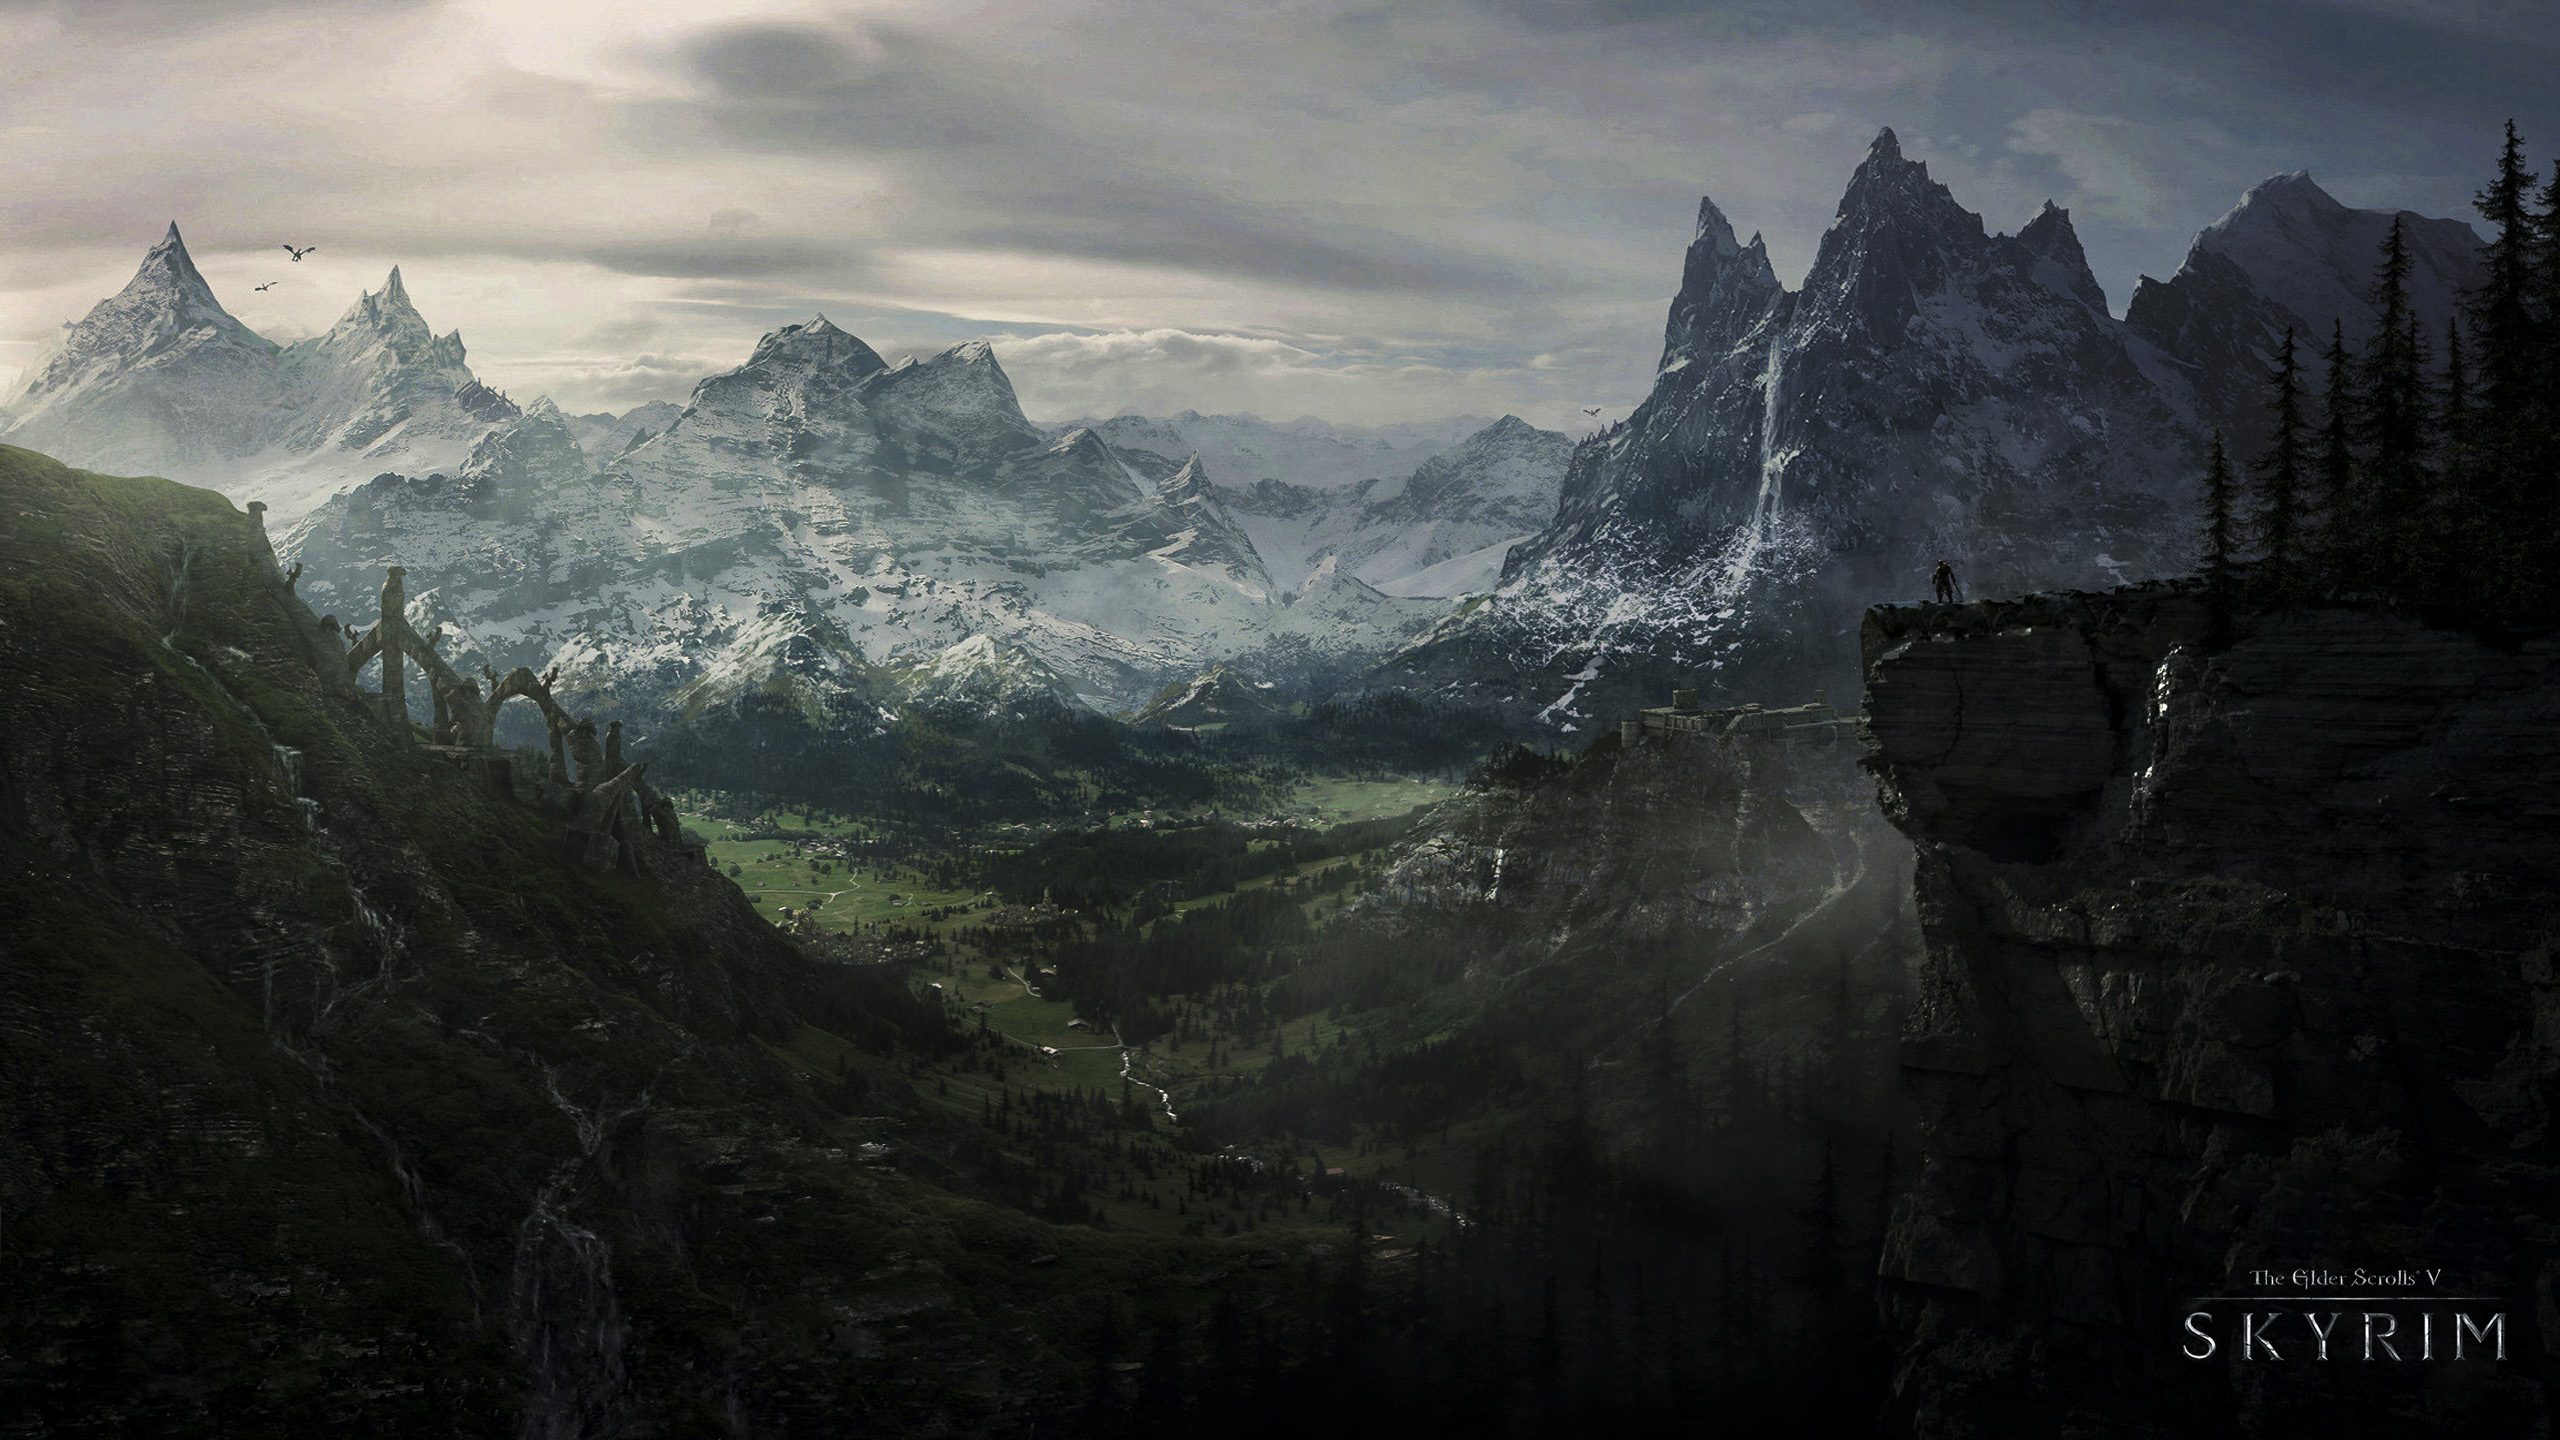 Elder Scrolls 6 Wallpaper: 190 The Elder Scrolls HD Wallpapers